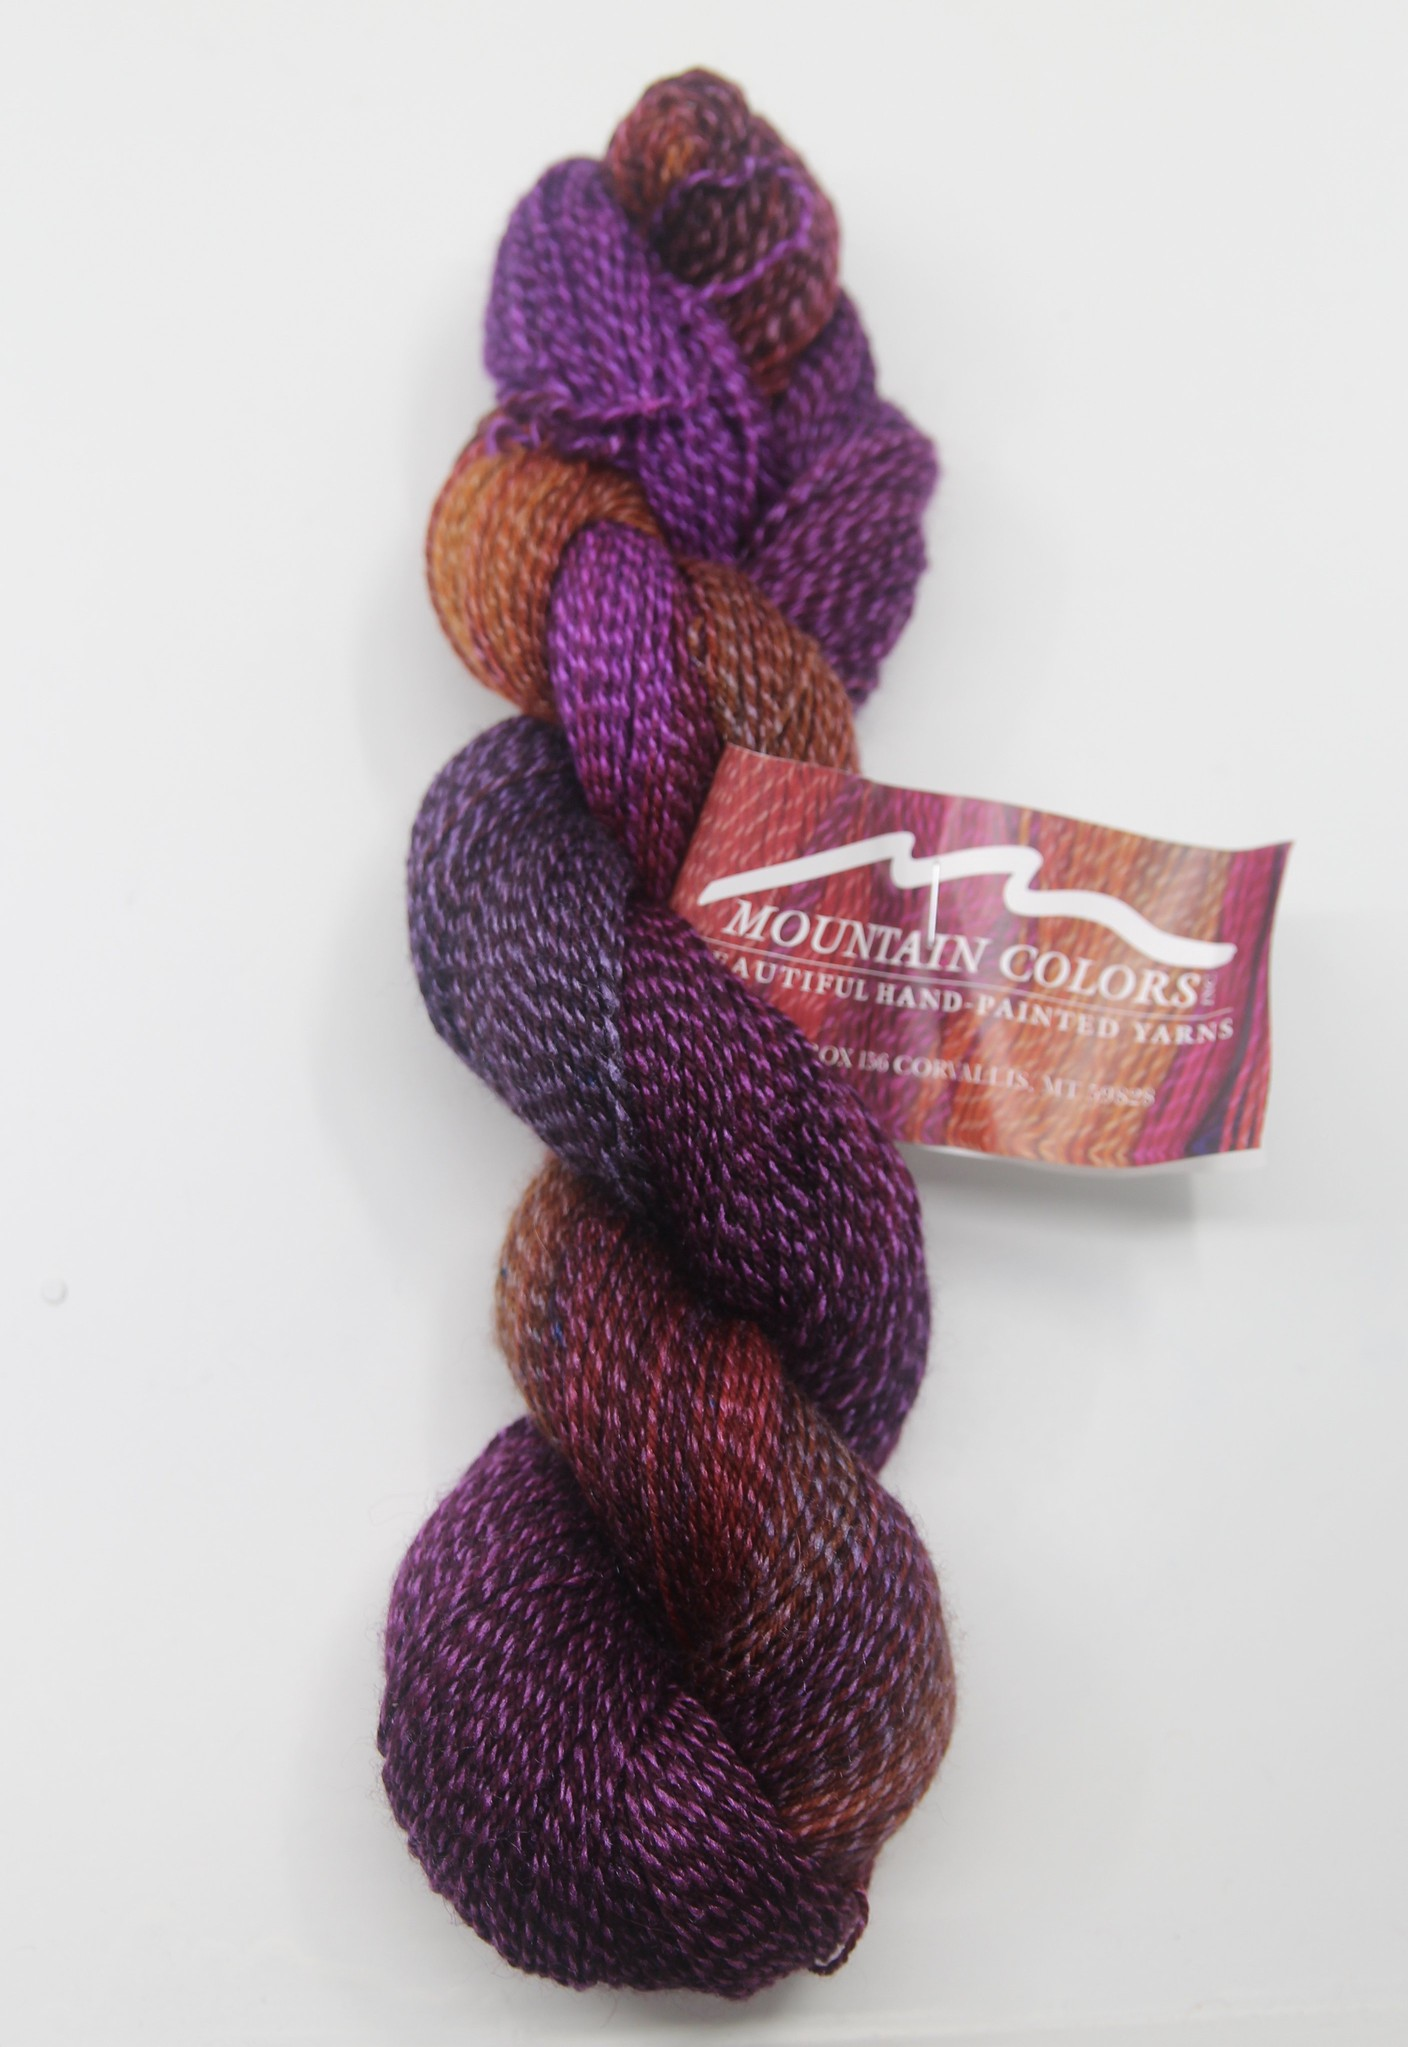 Mtn Colors Twizzlefoot Sock Snapdragon